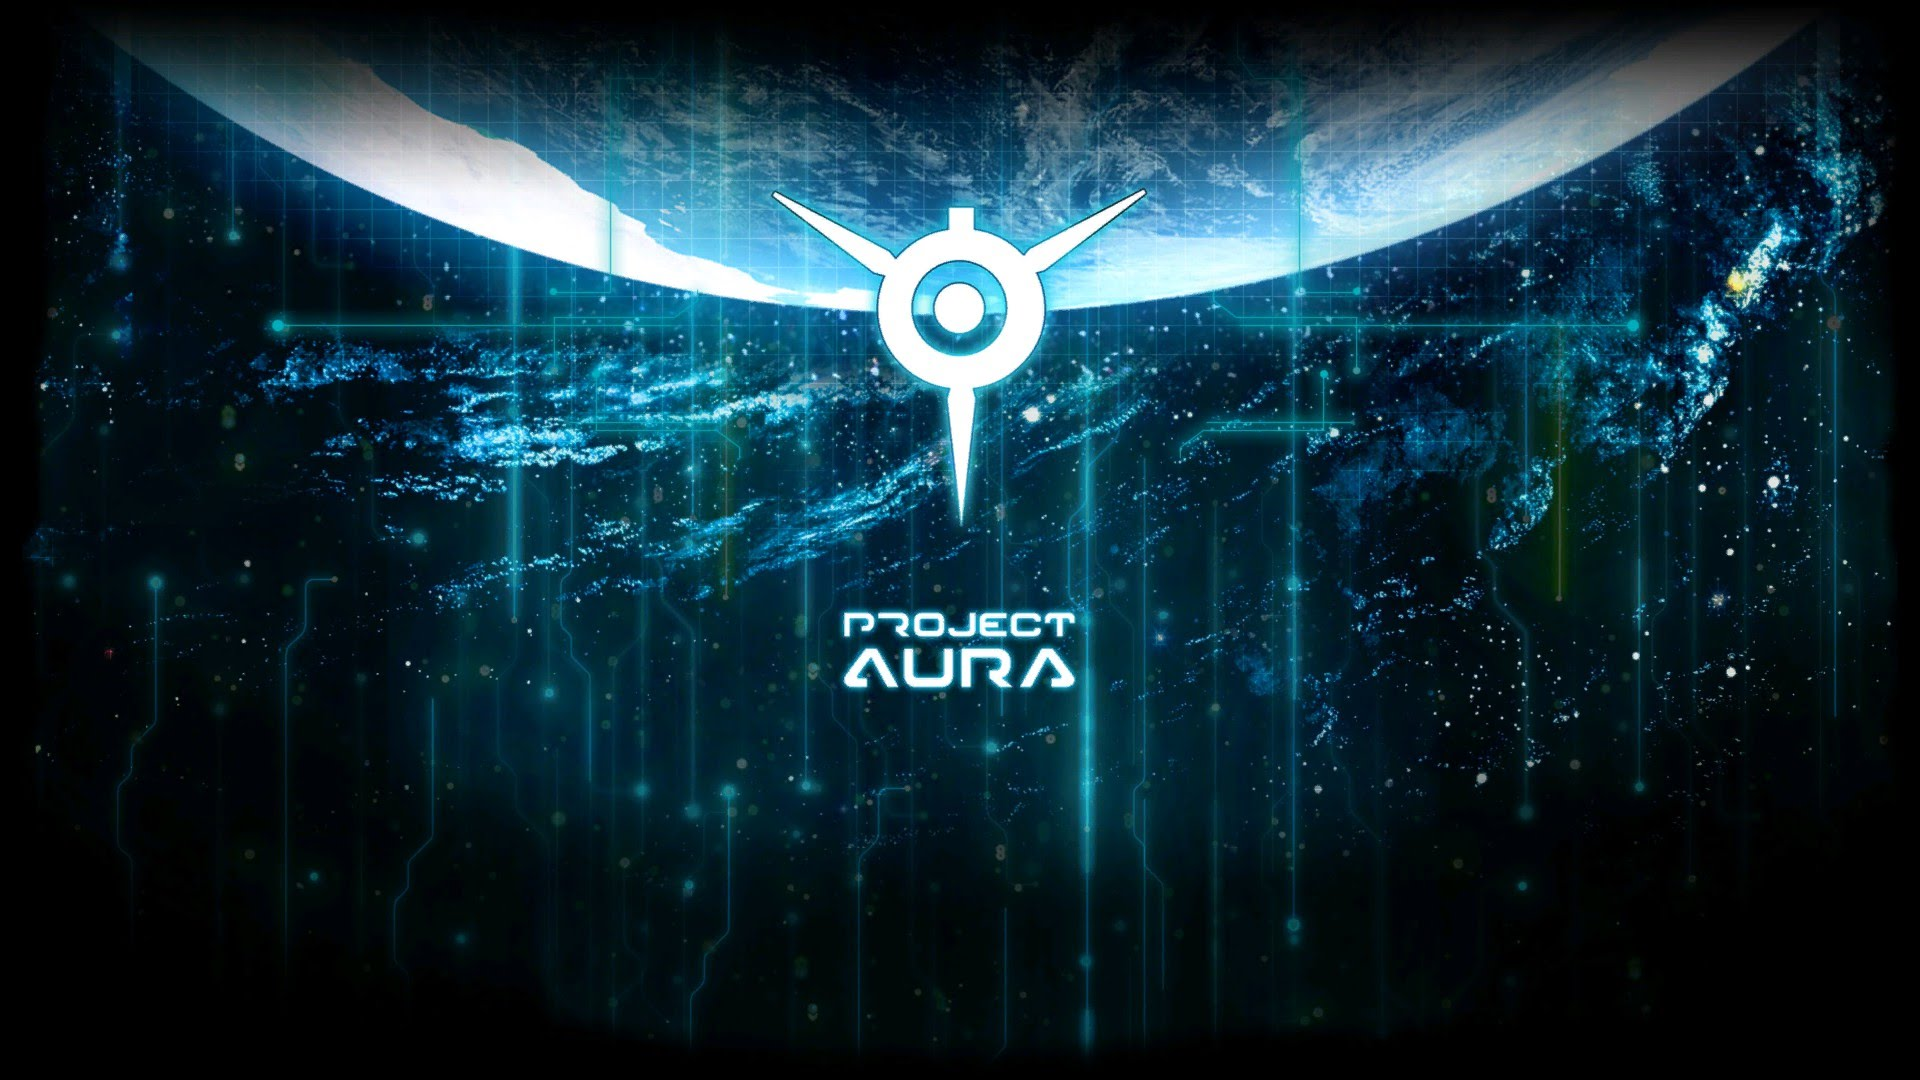 Project_aura